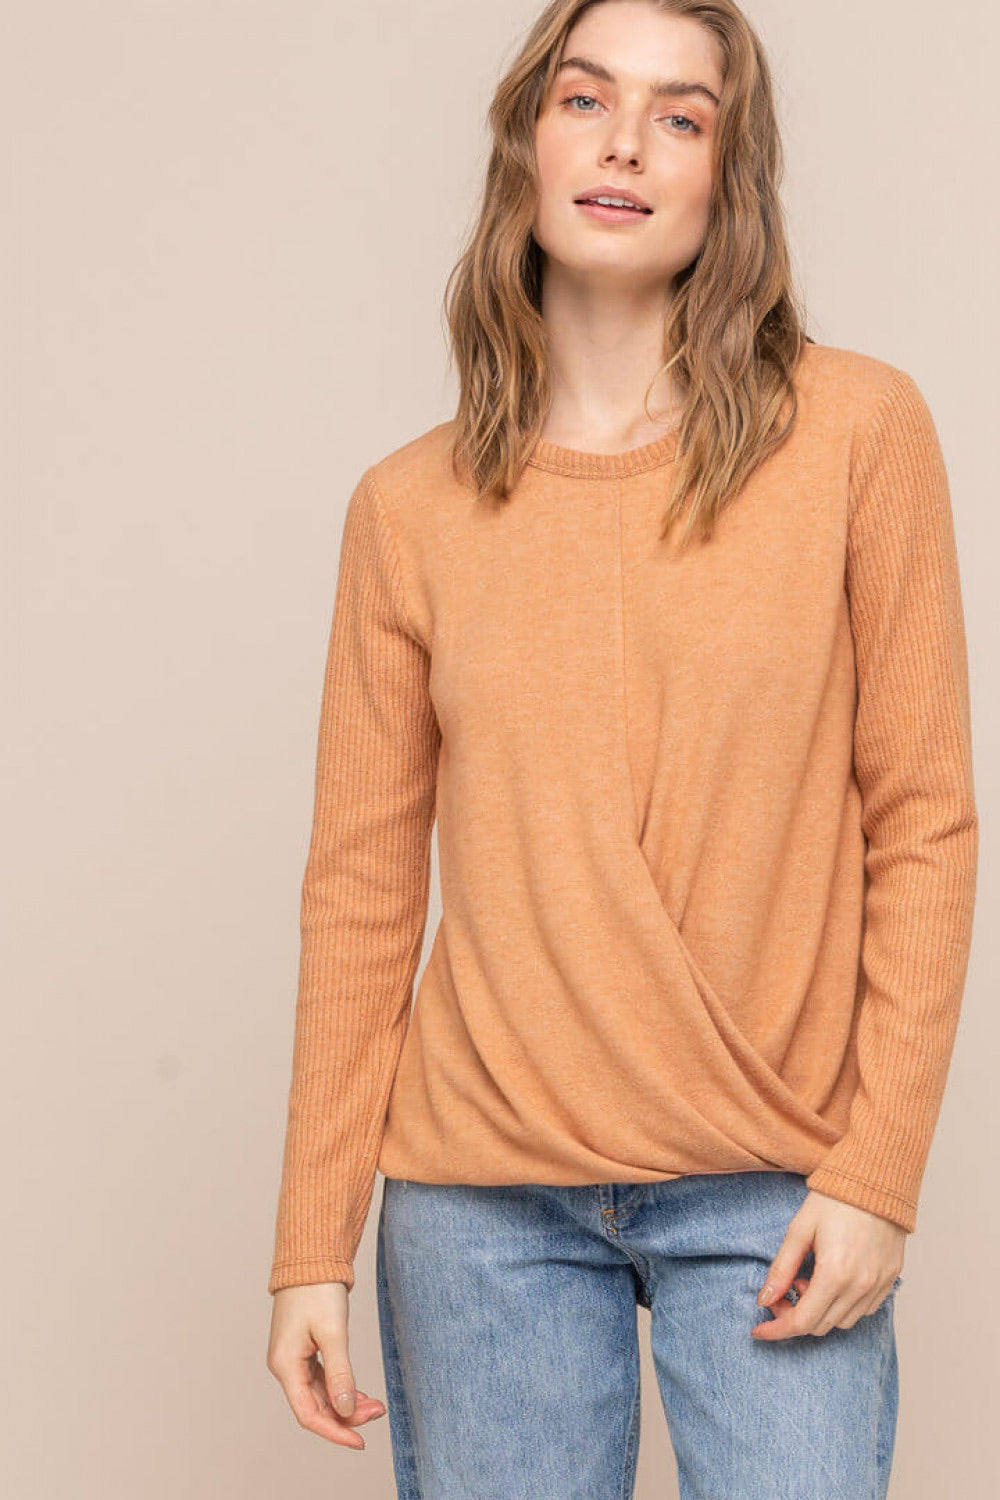 Bottom Crossover Knit Top